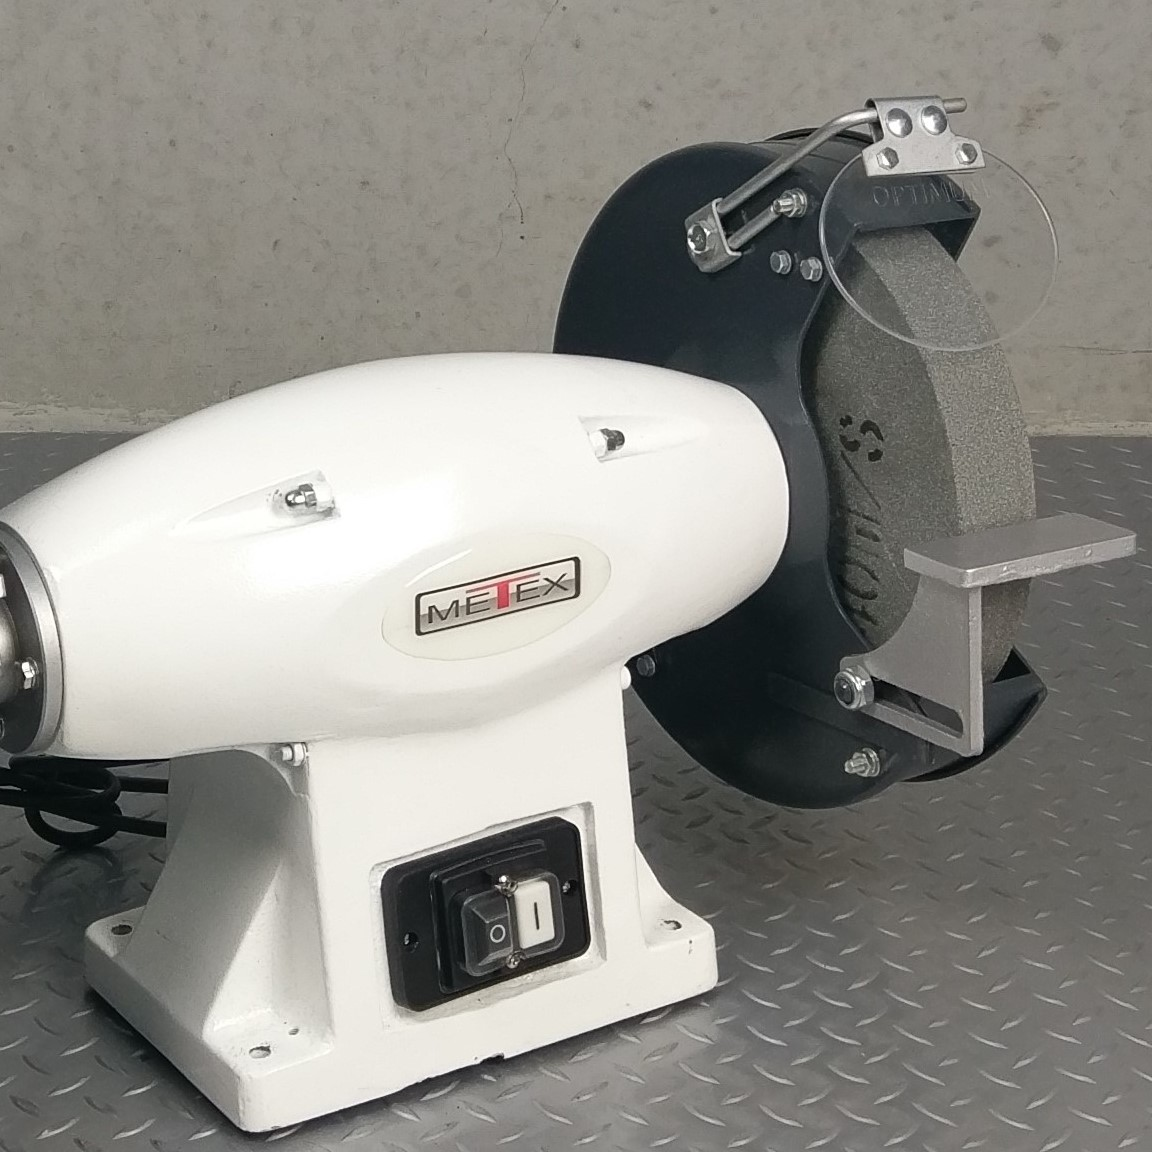 Metex 200mm Combo Bench Grinder Linisher Belt Sander With